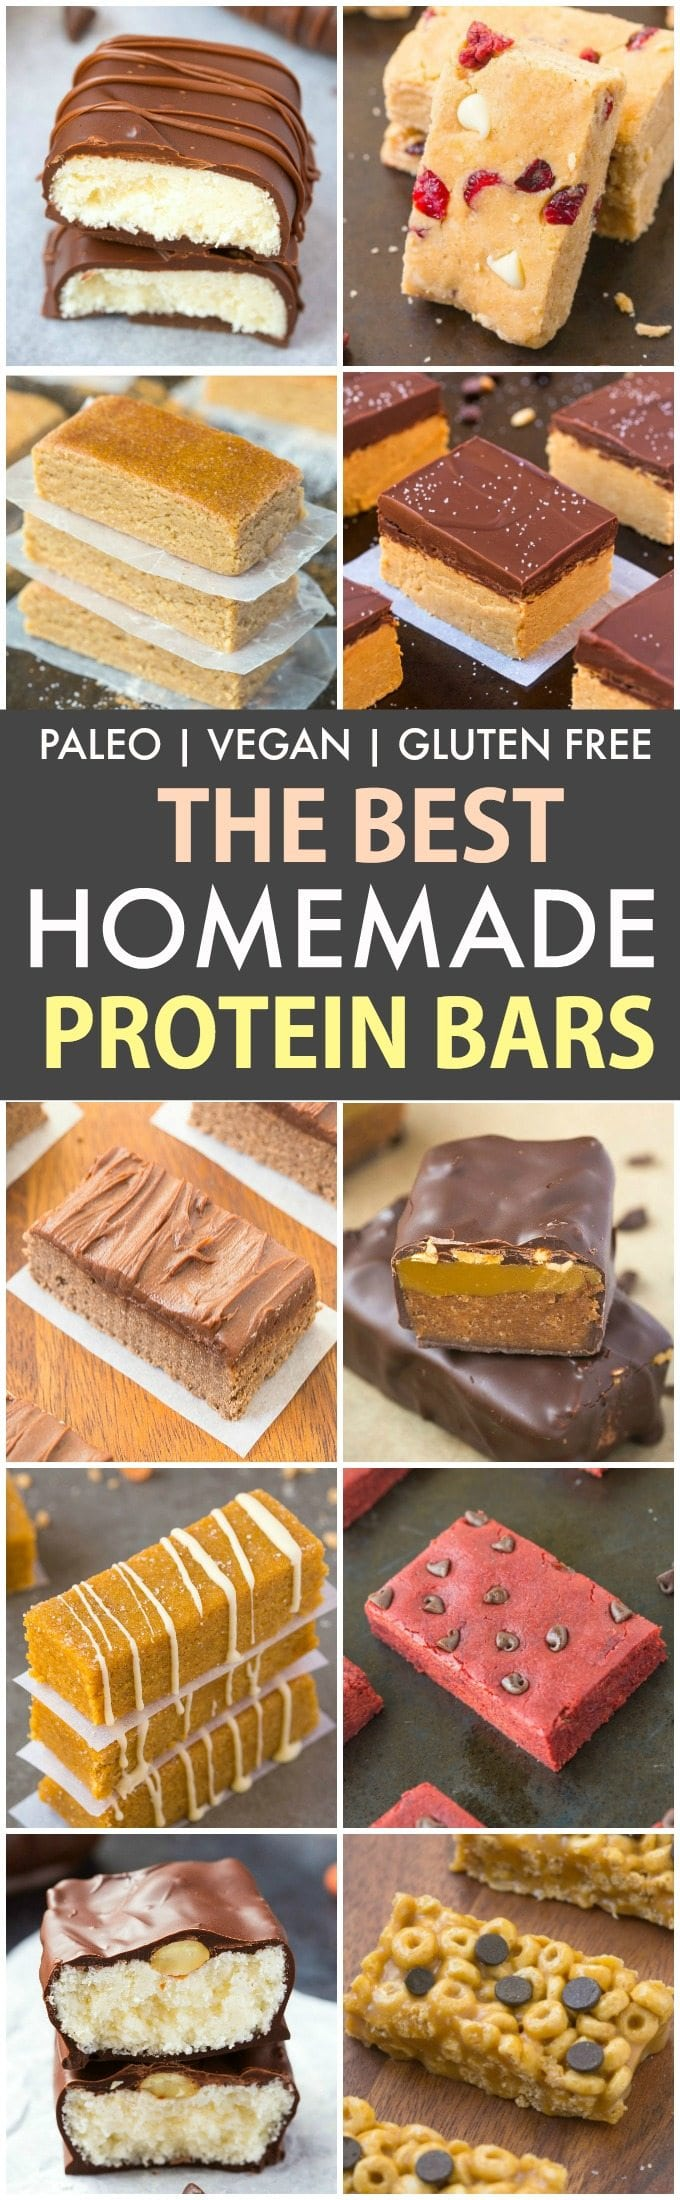 The Best Healthy Homemade Protein Bar Recipes (P, V, GF, DF)- Easy, quick and delicious homemade protein bar recipes which take minutes to make- A portable low carb and low sugar snack! {vegan, gluten free, paleo}- thebigmansworld.com